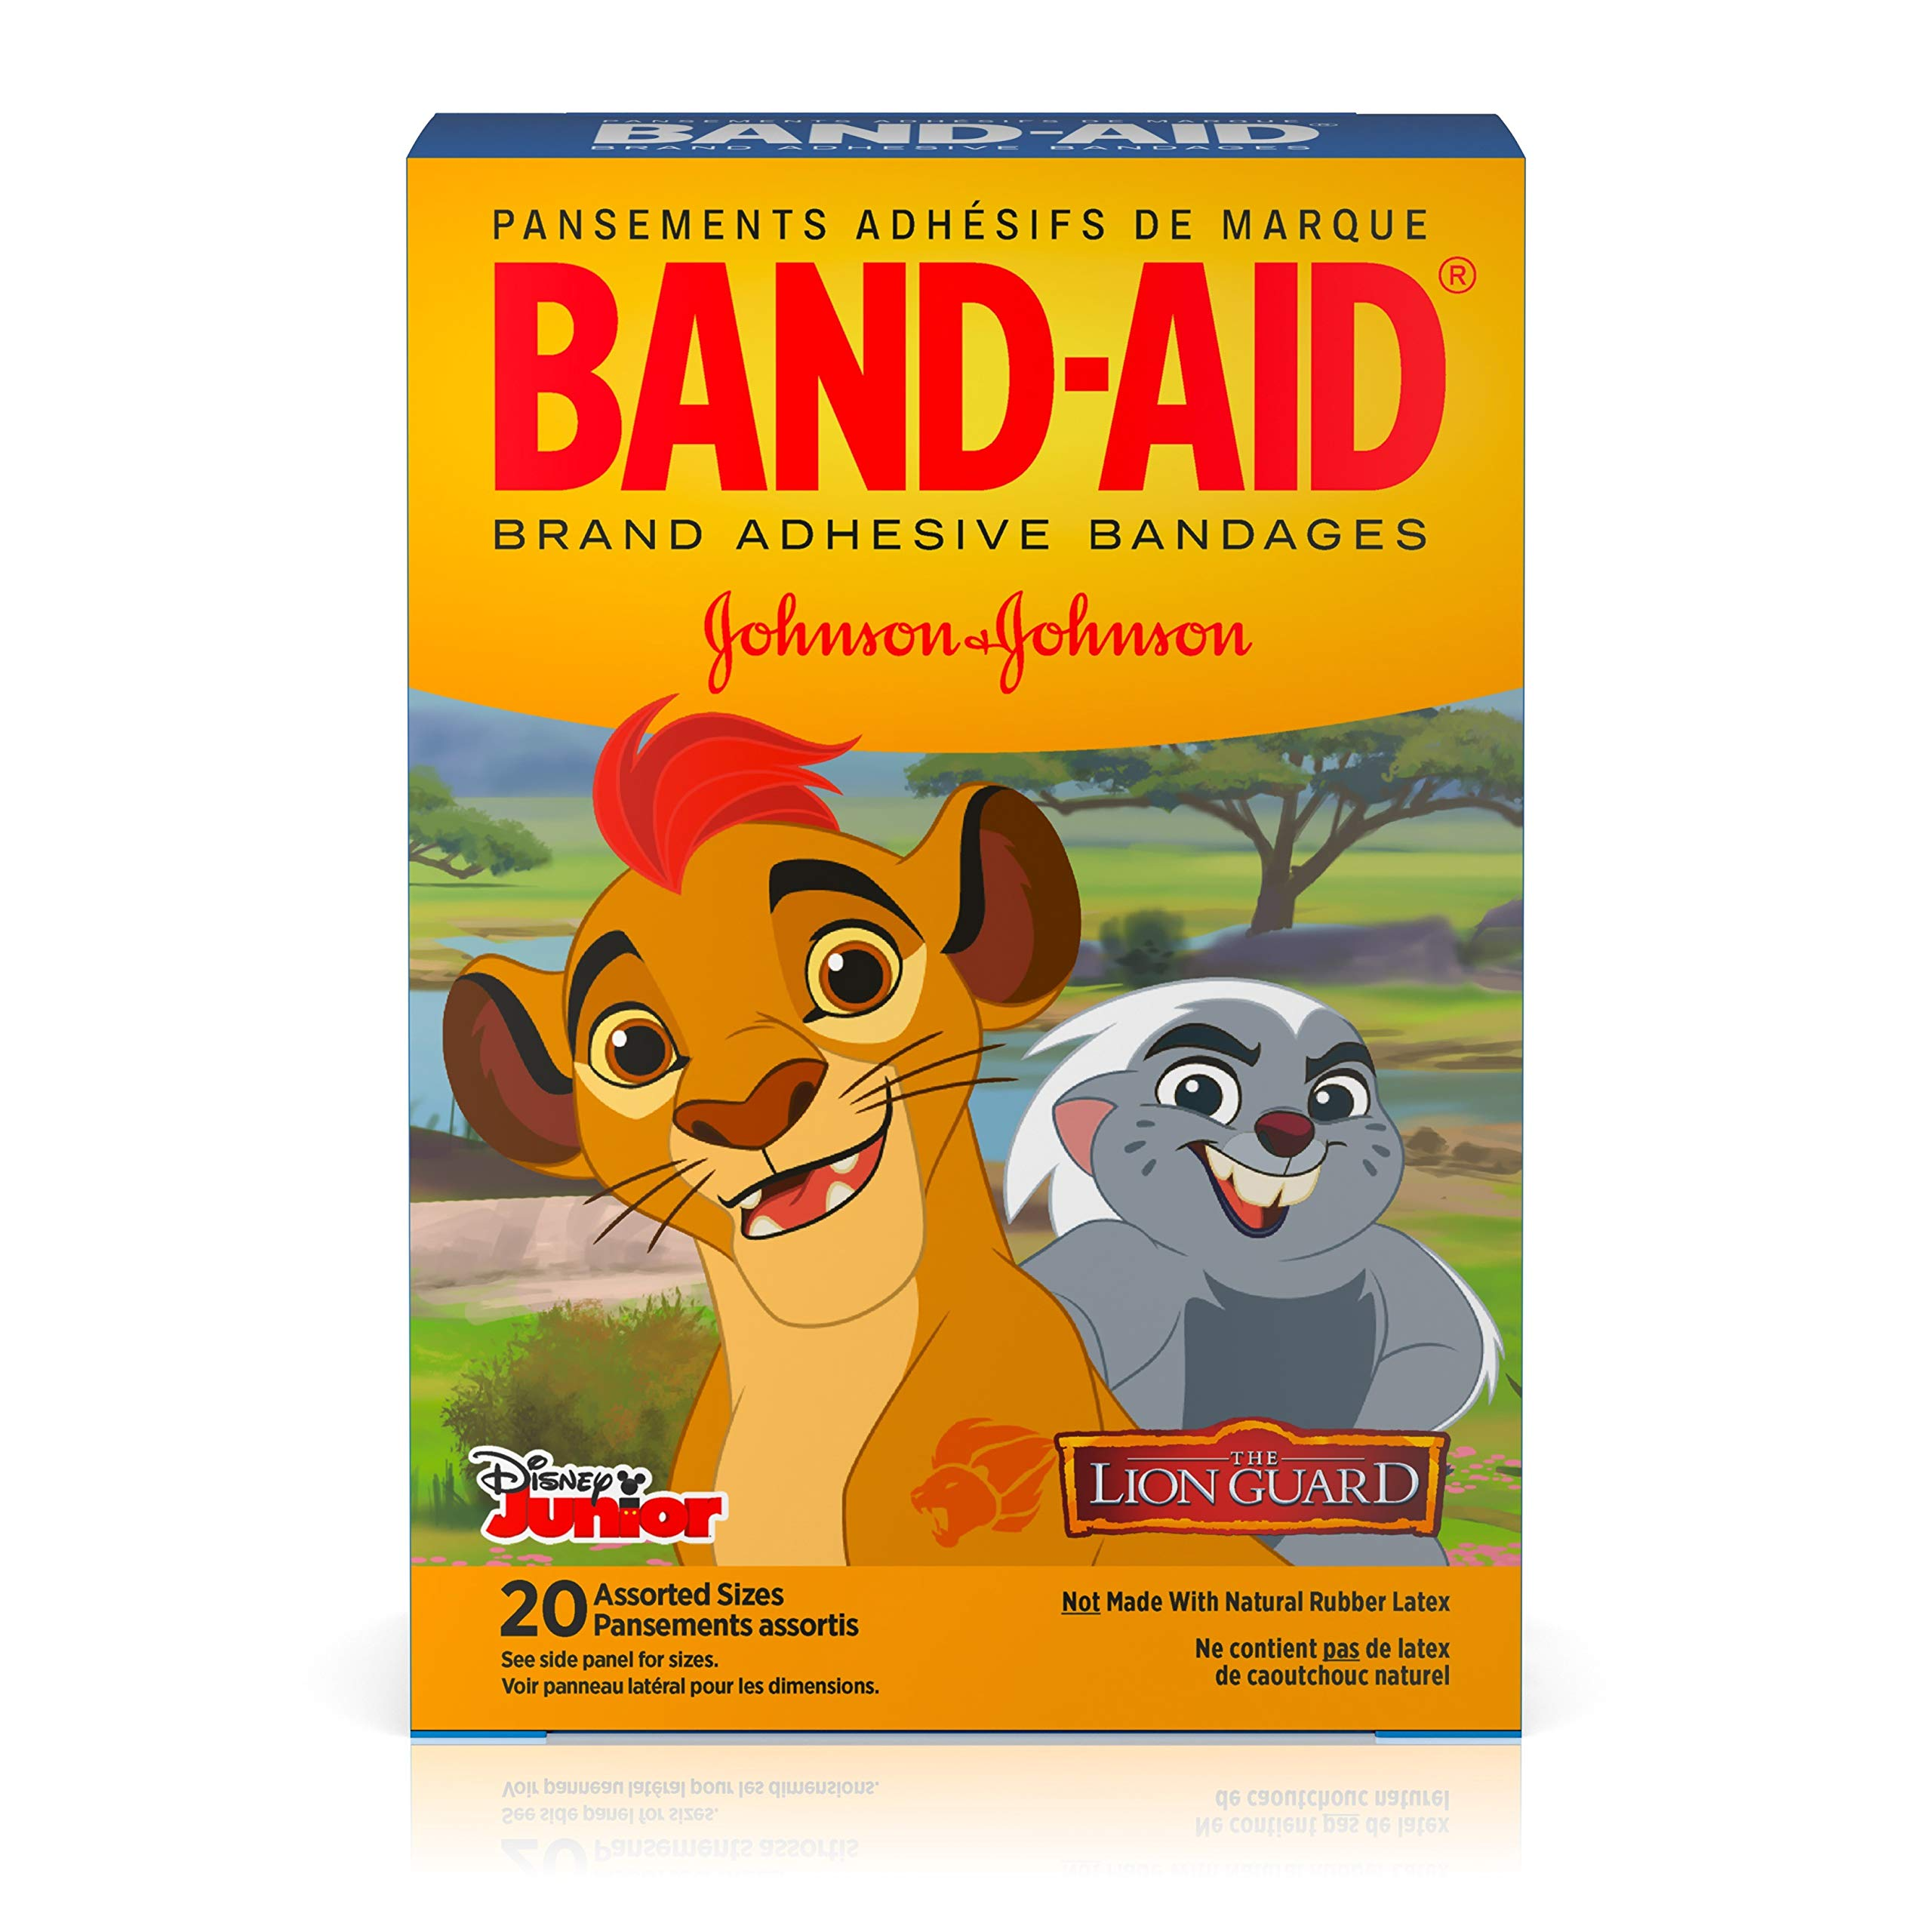 Band-Aid Brand Adhesive Bandages for Minor Cuts and Scrapes, Featuring Disney Junior The Lion Guard Characters for Kids, Assorted Sizes 20 ct